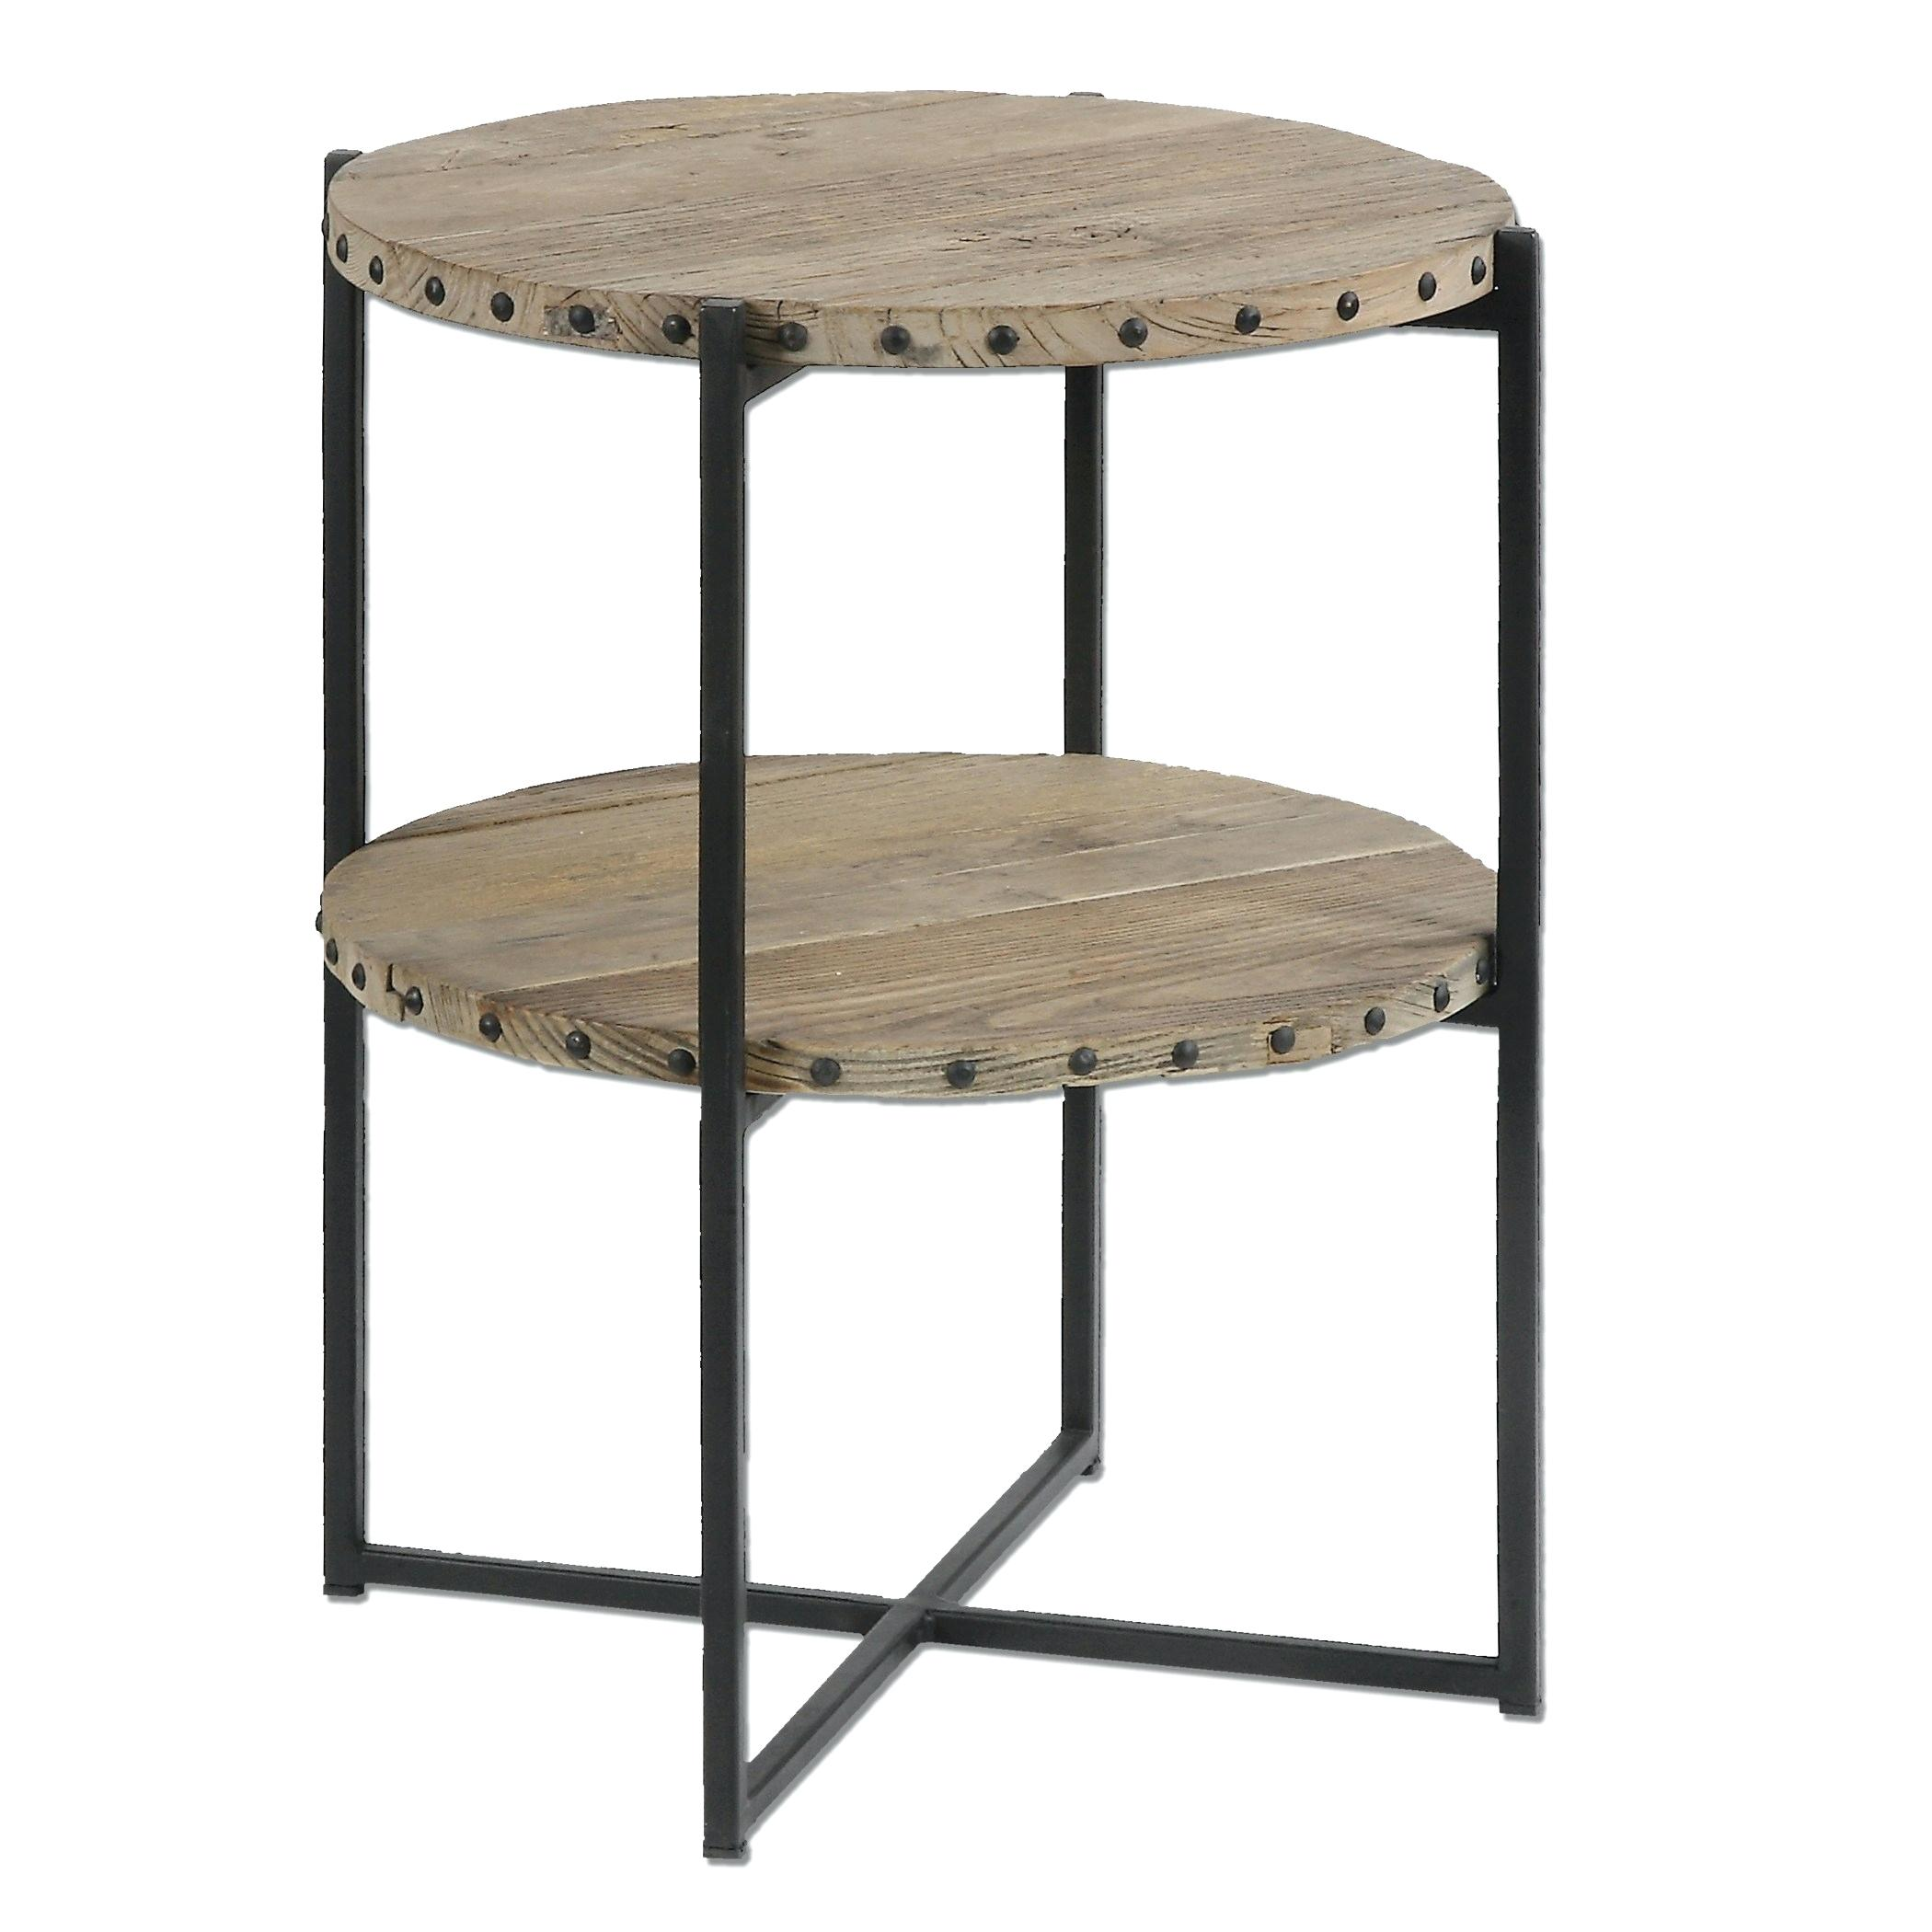 uttermost accent tables soulshine info furniture round table kitchen island size dice red home decor antique wood coffee target chairs cottage style end bedford jute rope small